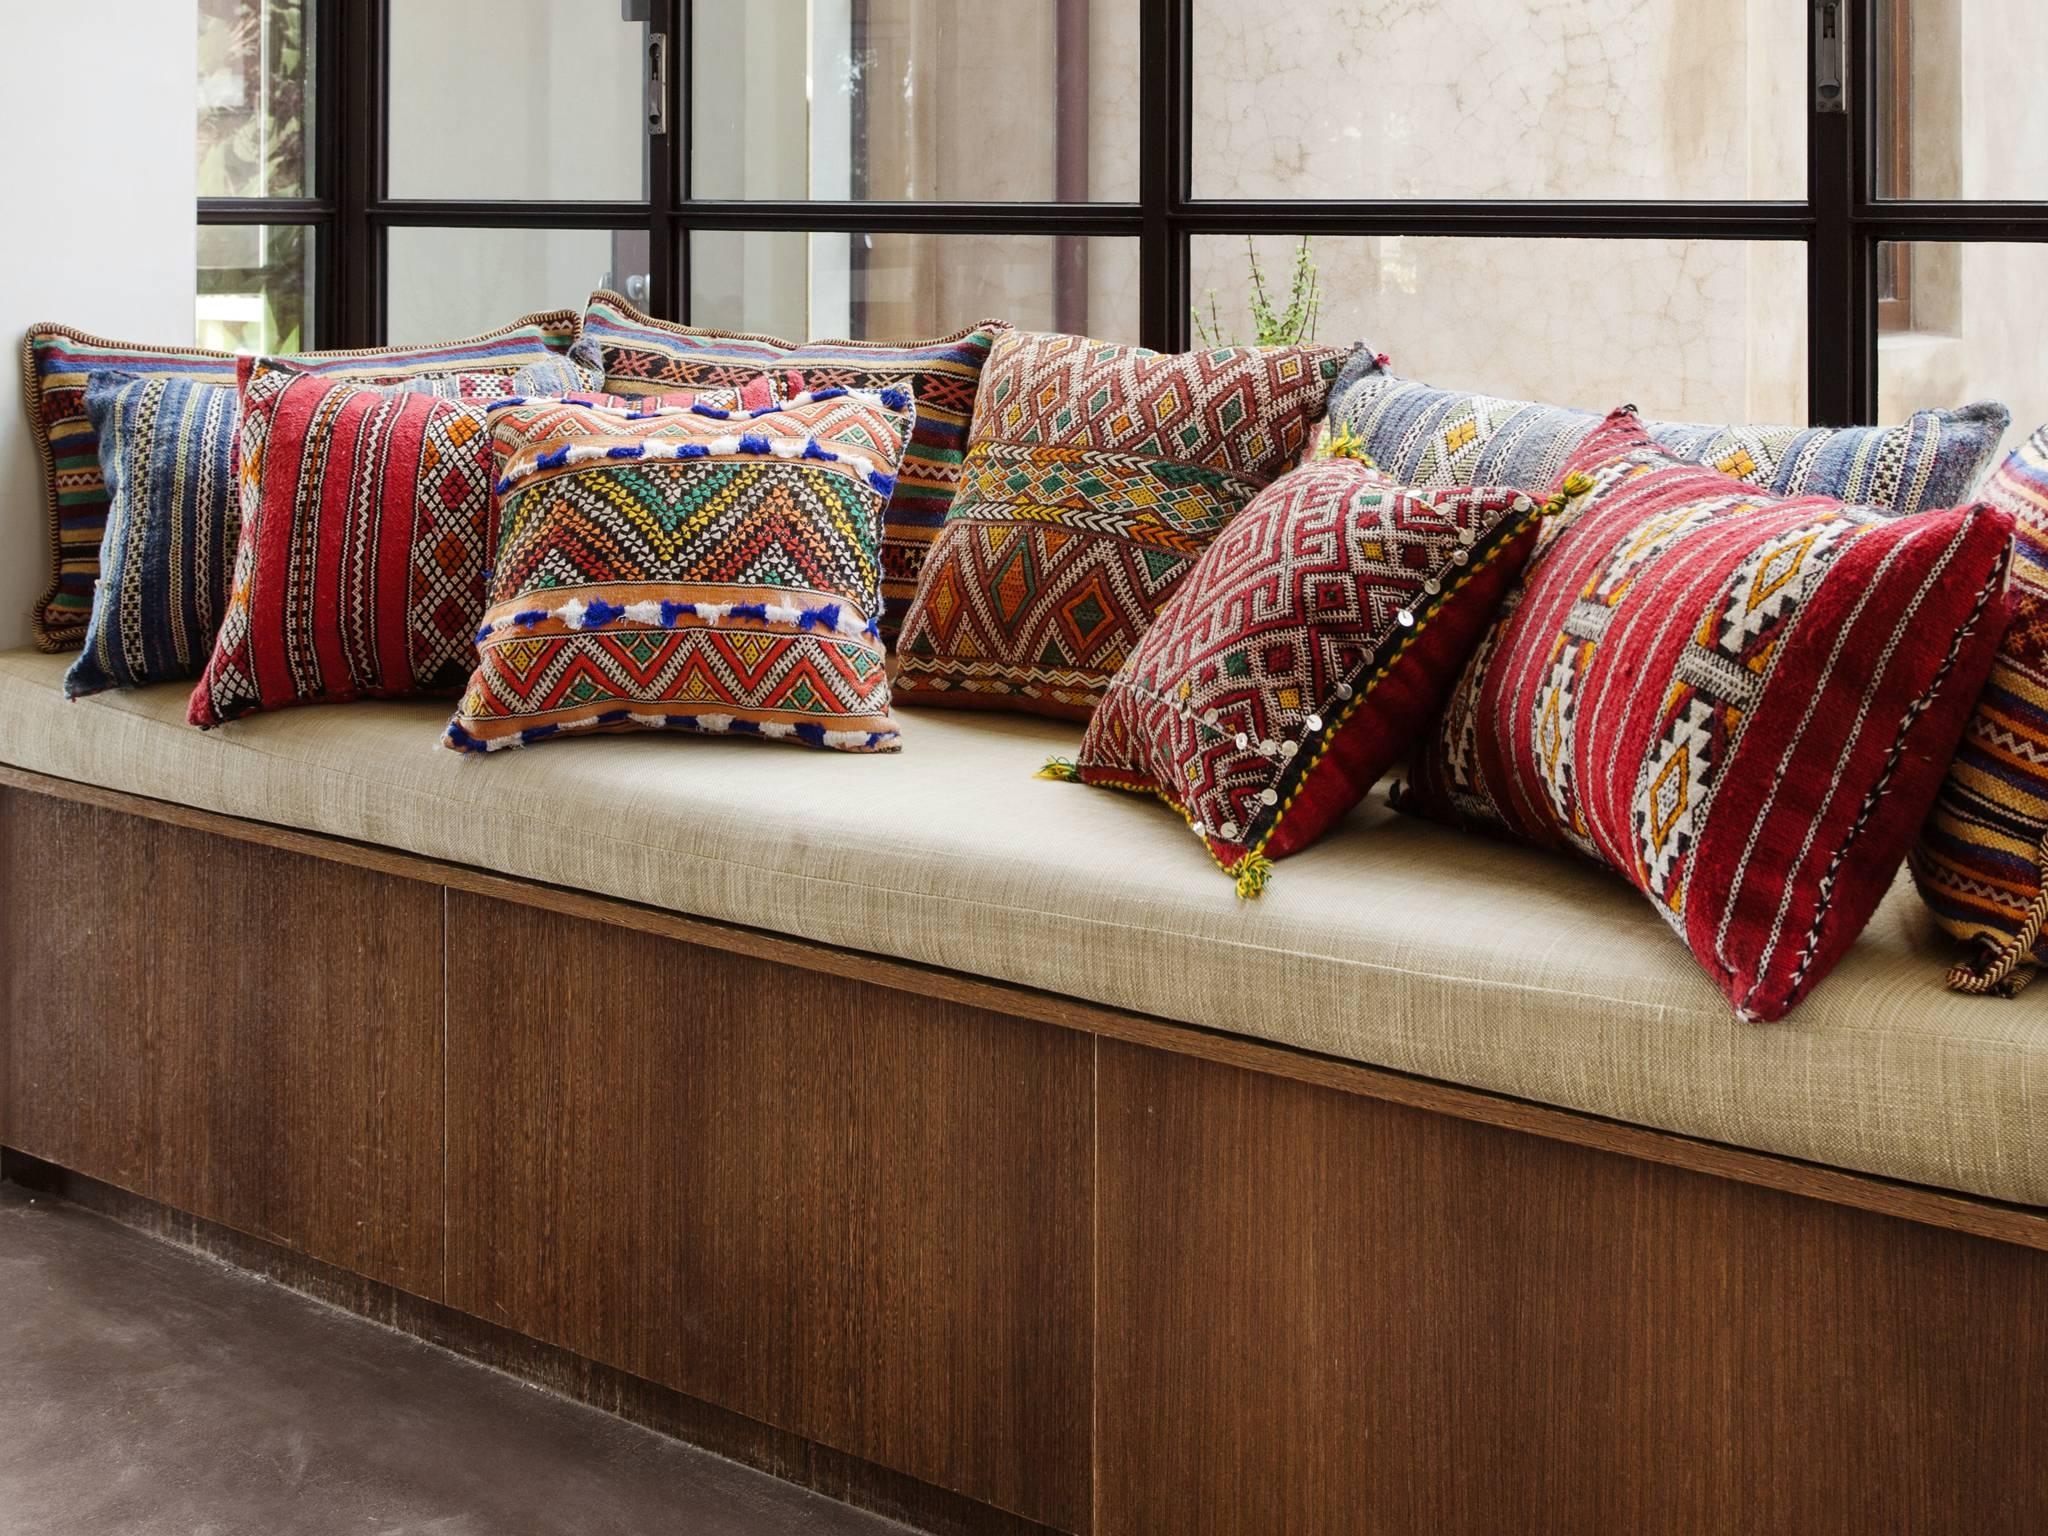 Cushions Dubai In Dubai, Buy Customized Cushions, Dubai Furniture regarding Customized Sofas (Image 4 of 30)